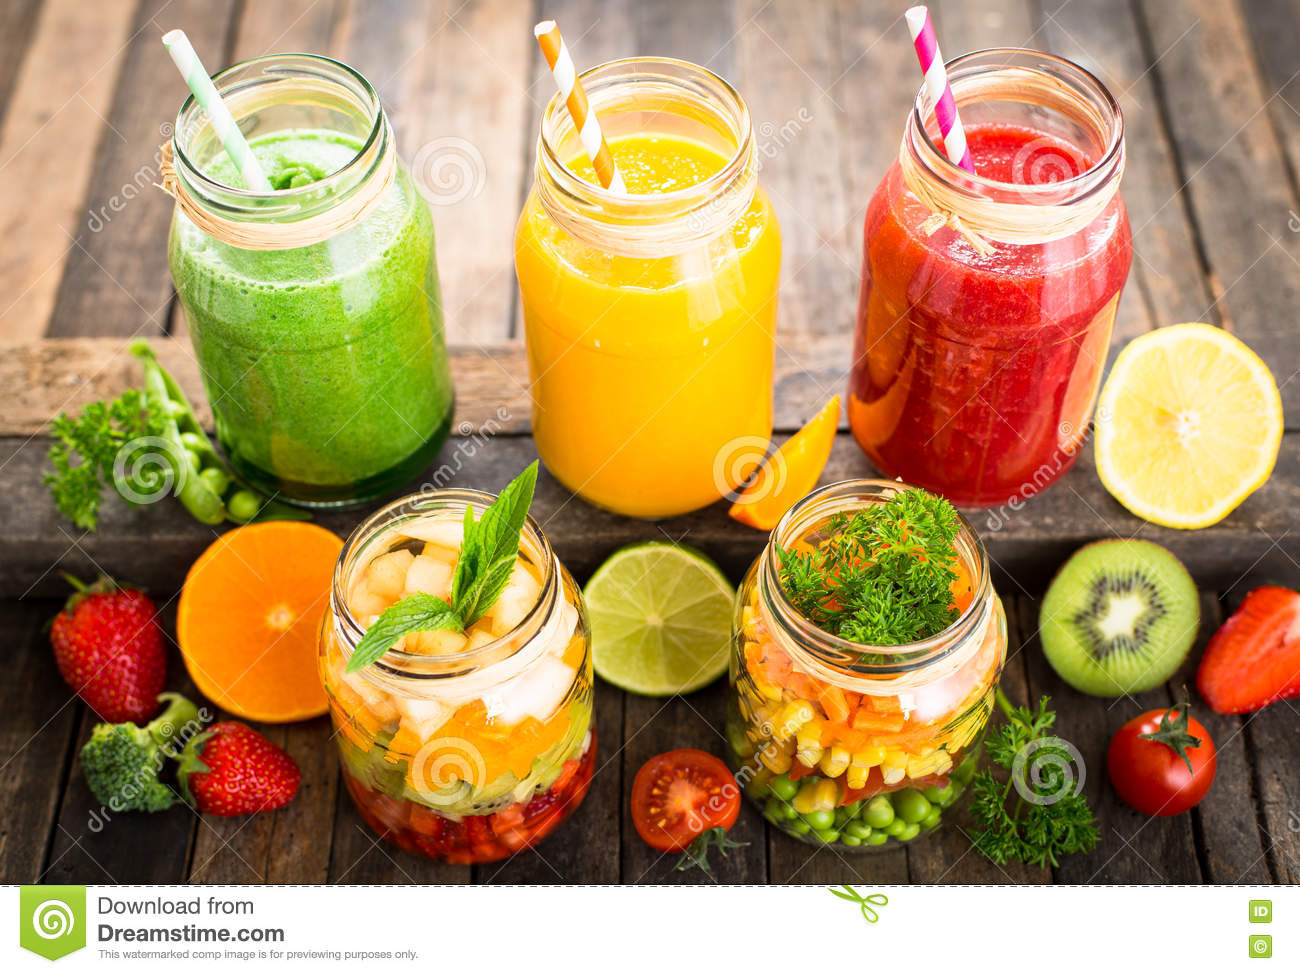 healthy fruit and vegetable shakes is rhubarb a fruit or vegetable